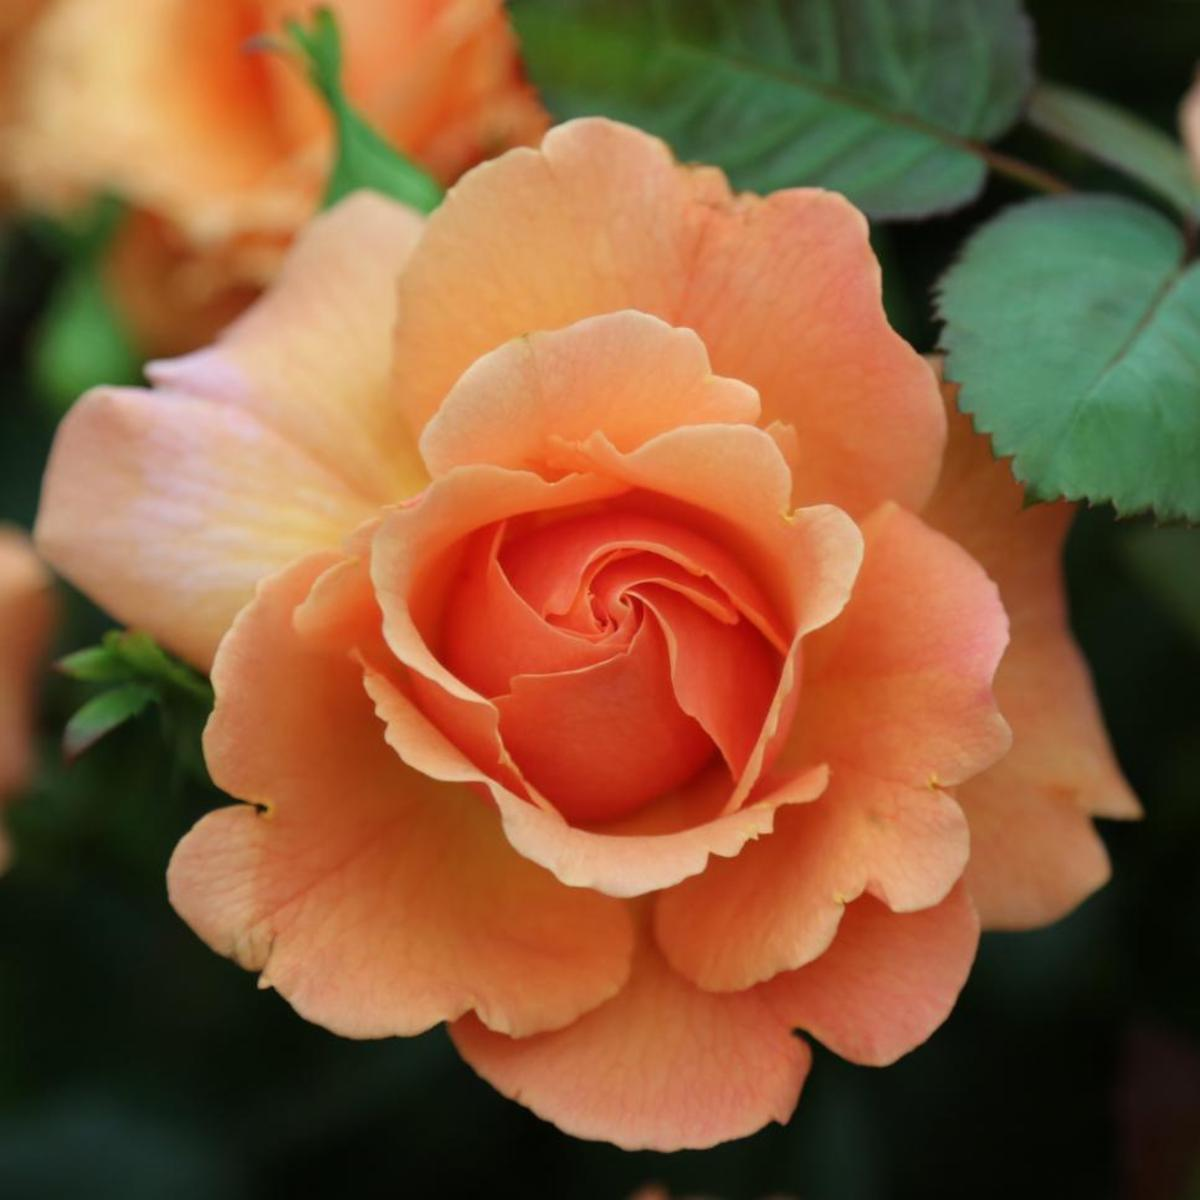 This beautiful rose hails from the Harkness family in England and is easy to grow.